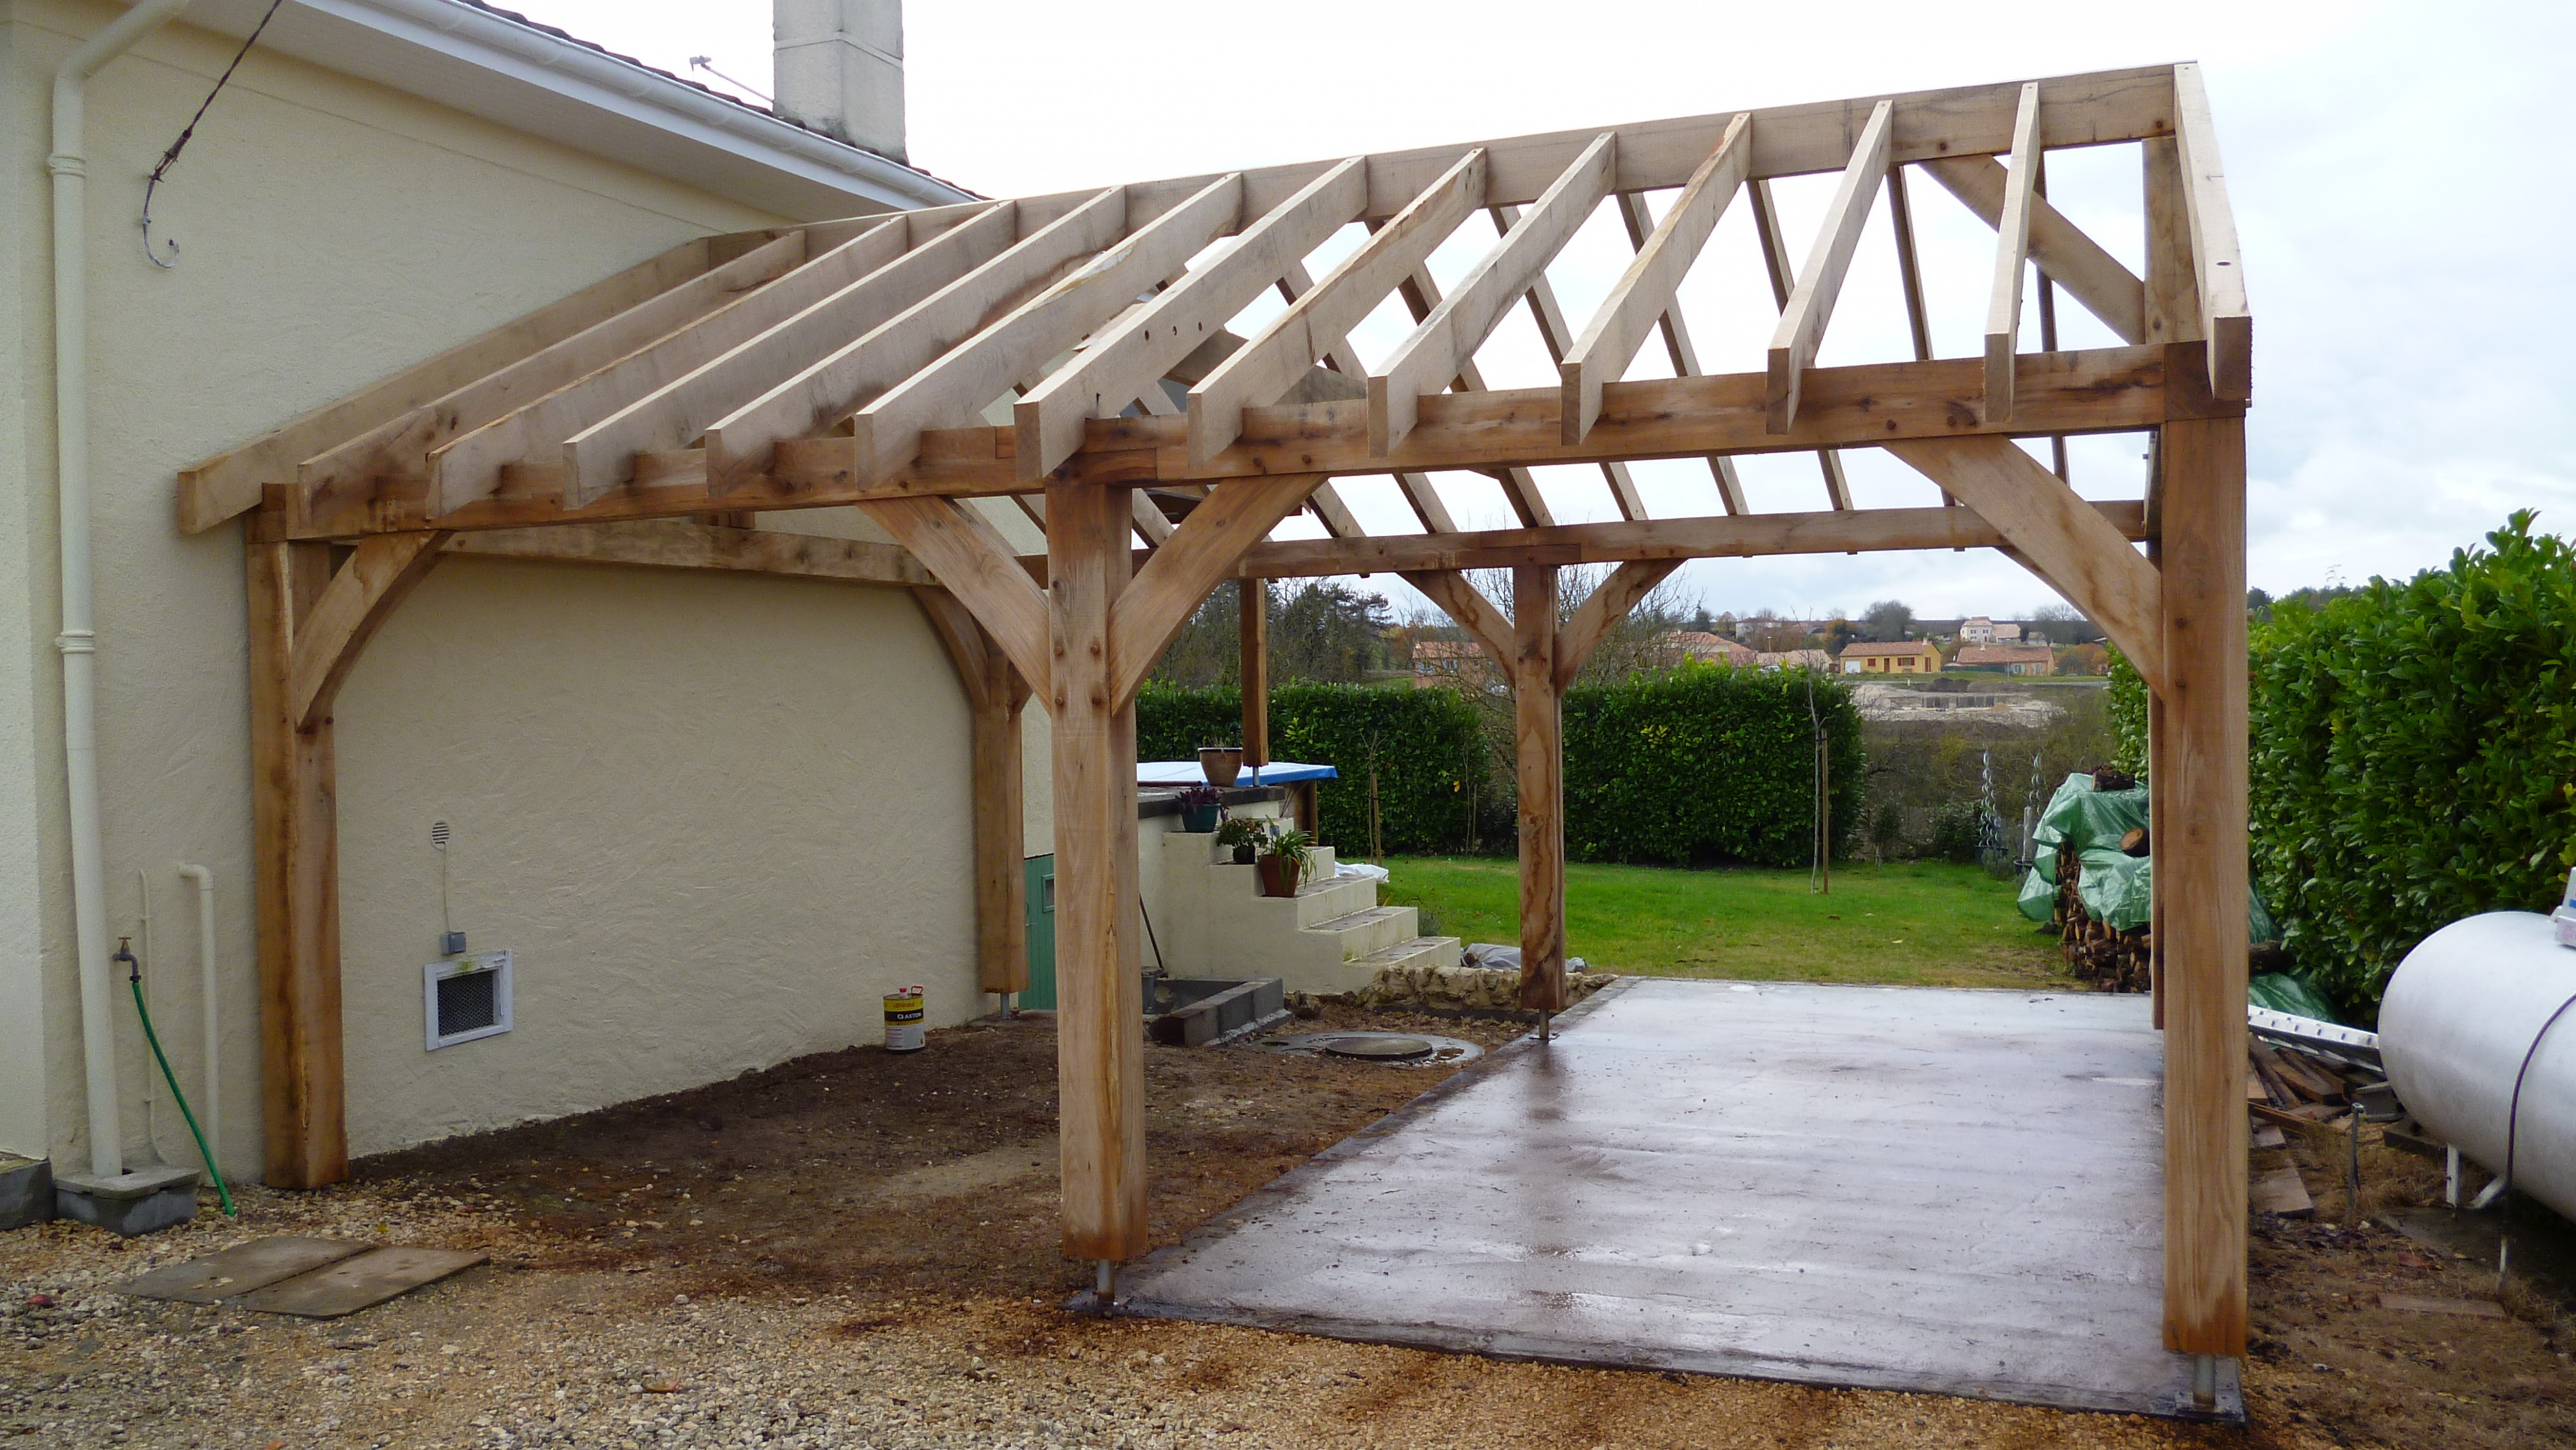 Simple Guidance For You In Local Carports | local carports